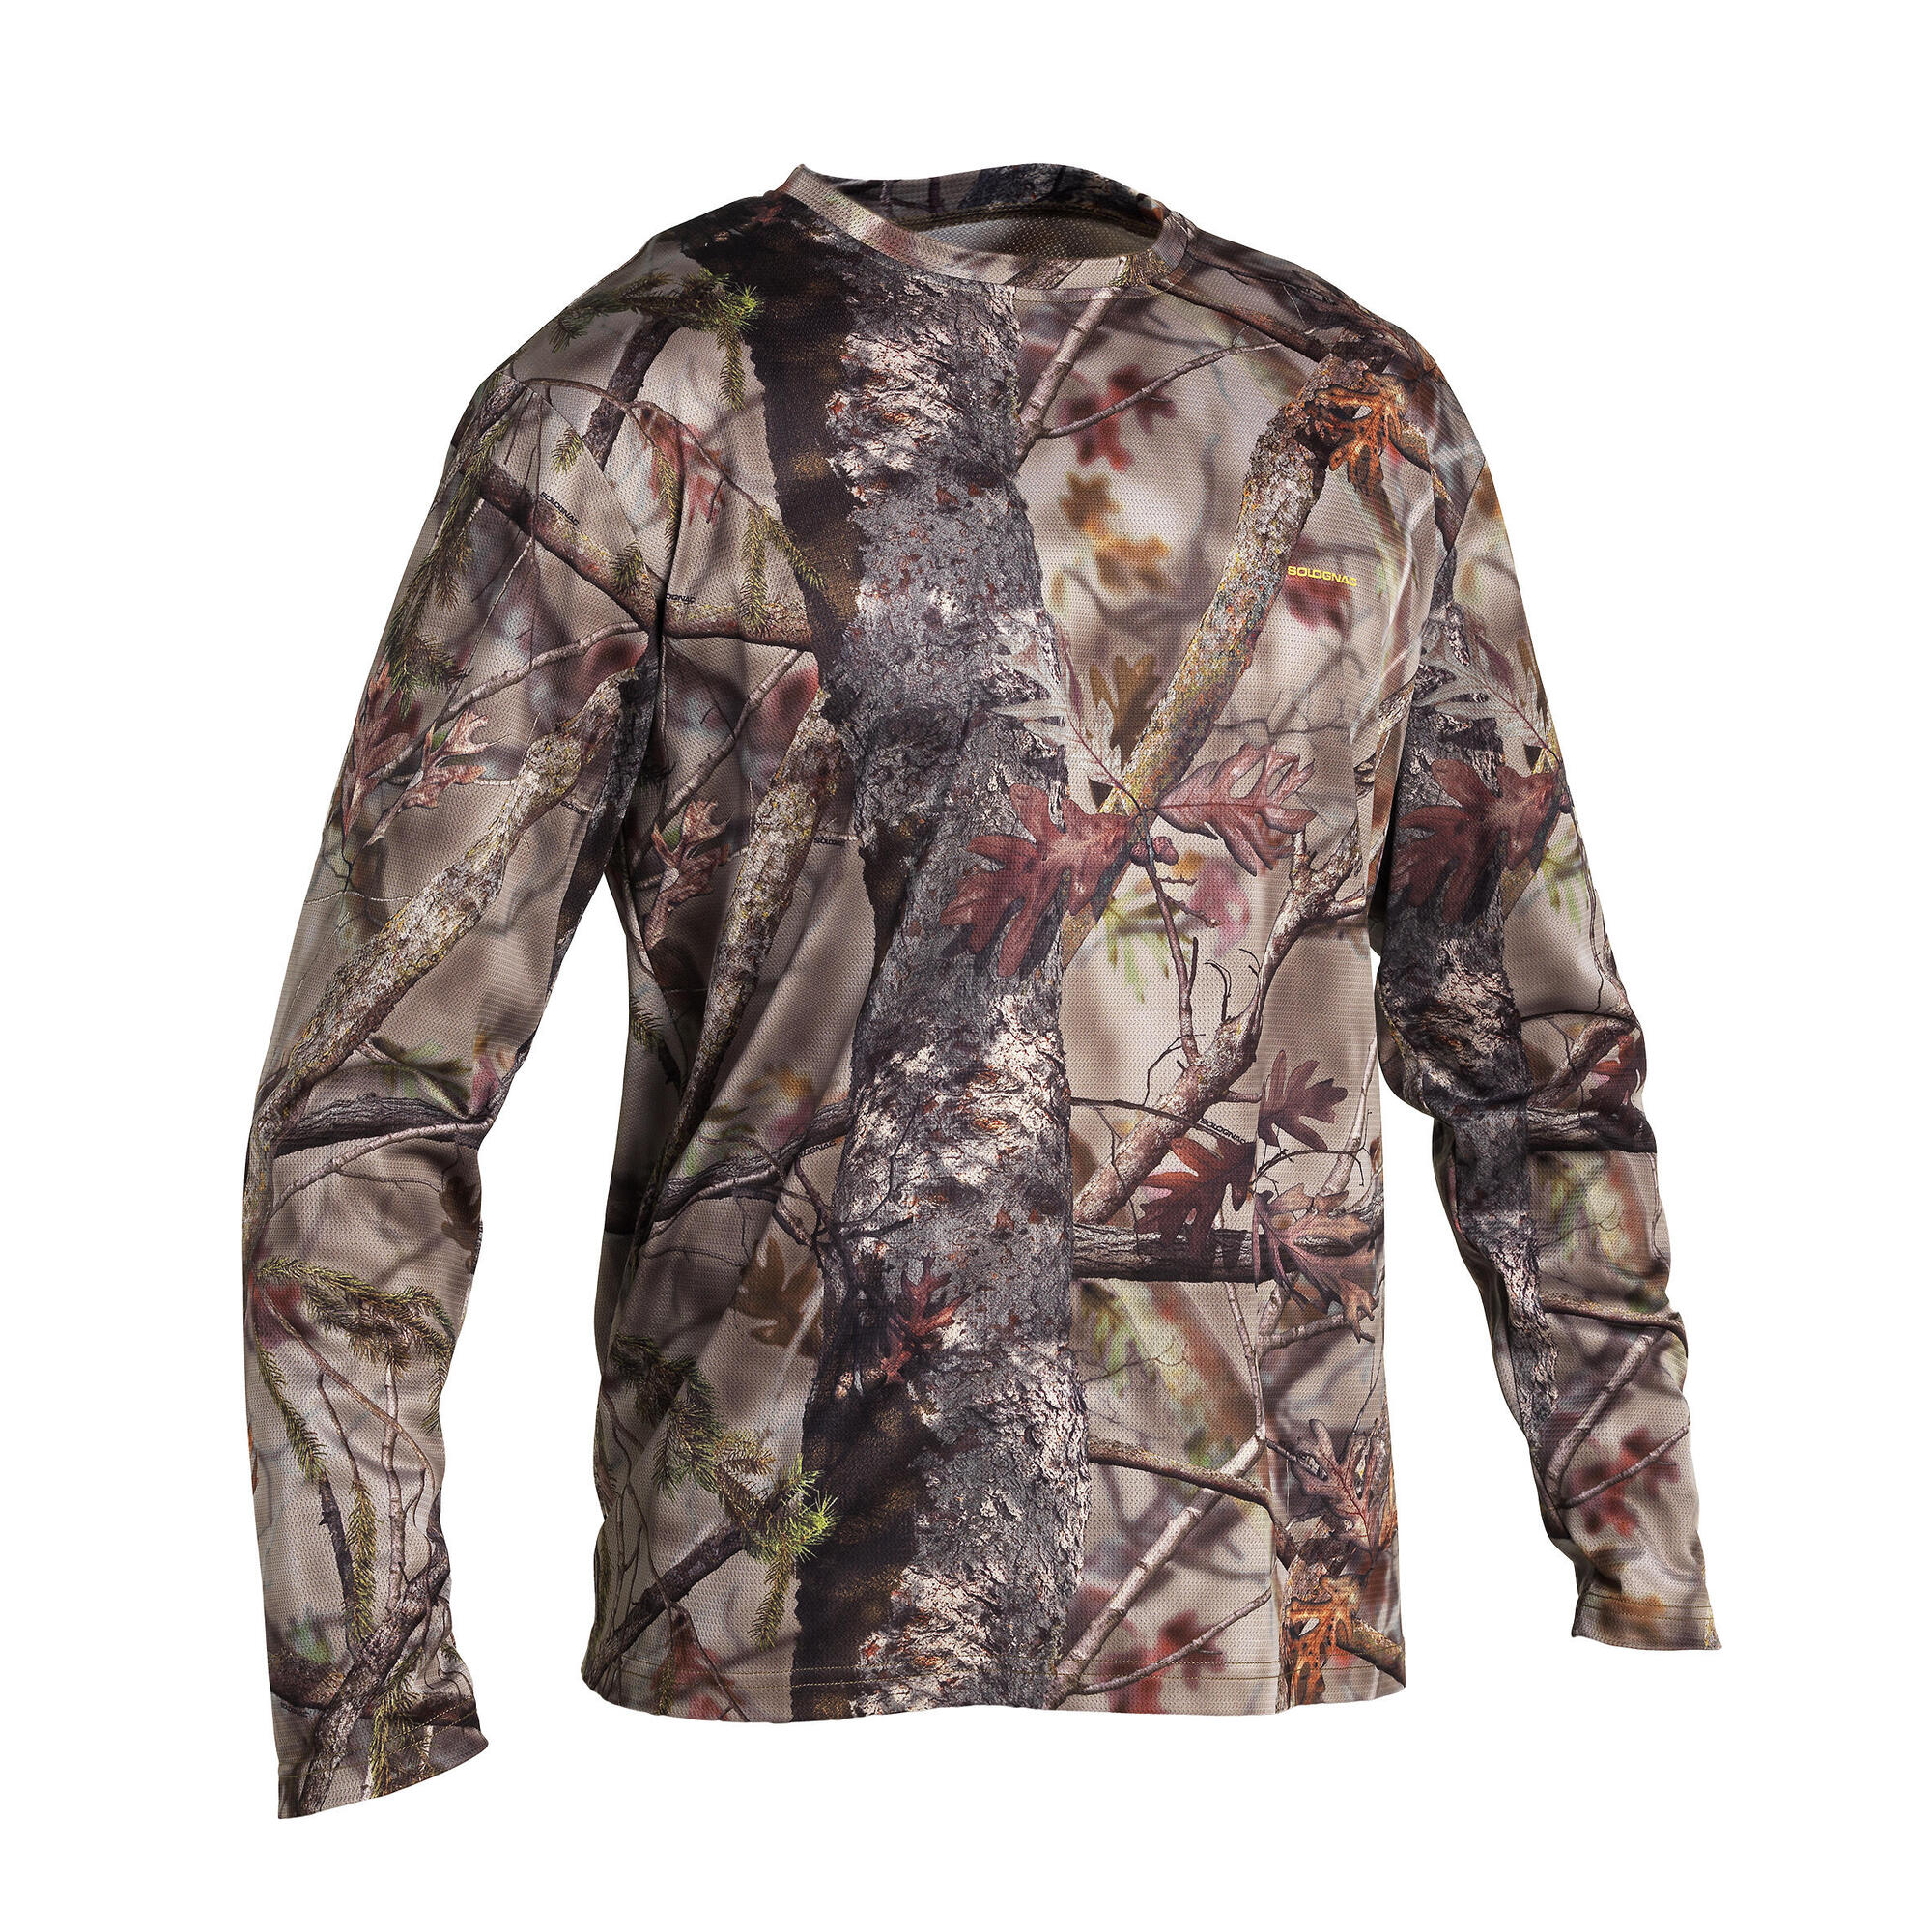 Actikam 100 long sleeved breathable t shirt camouflage for Lightweight breathable long sleeve shirts